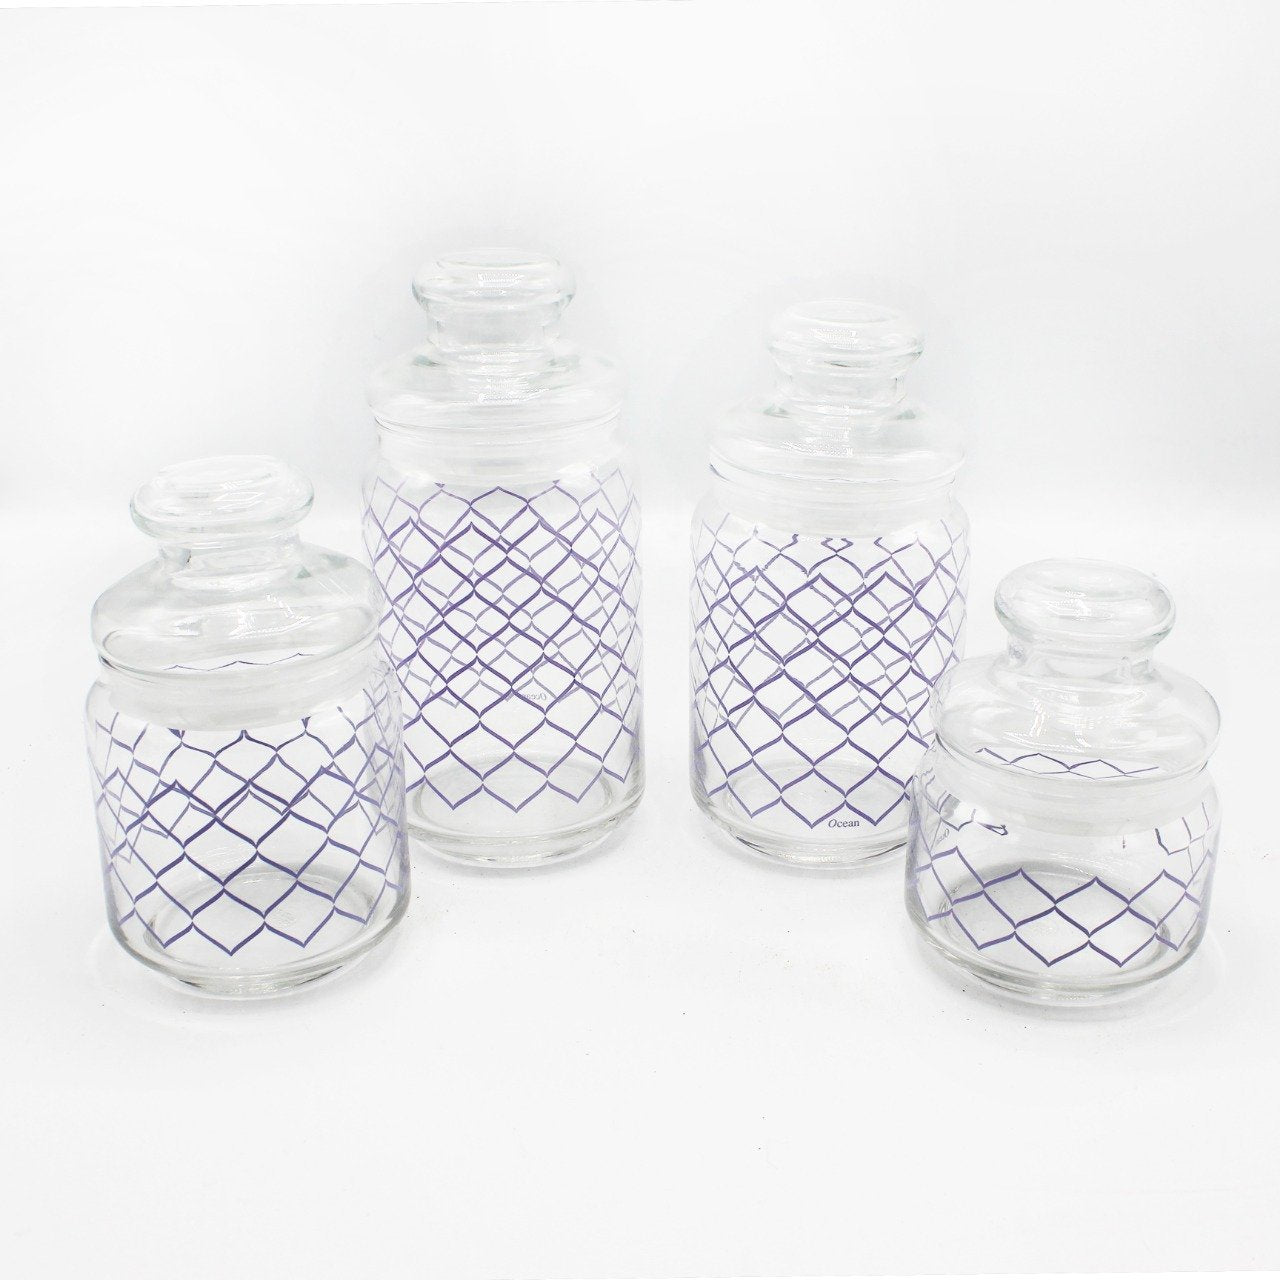 Ocean Glass Pop Jars - Pack of 4 - waseeh.com